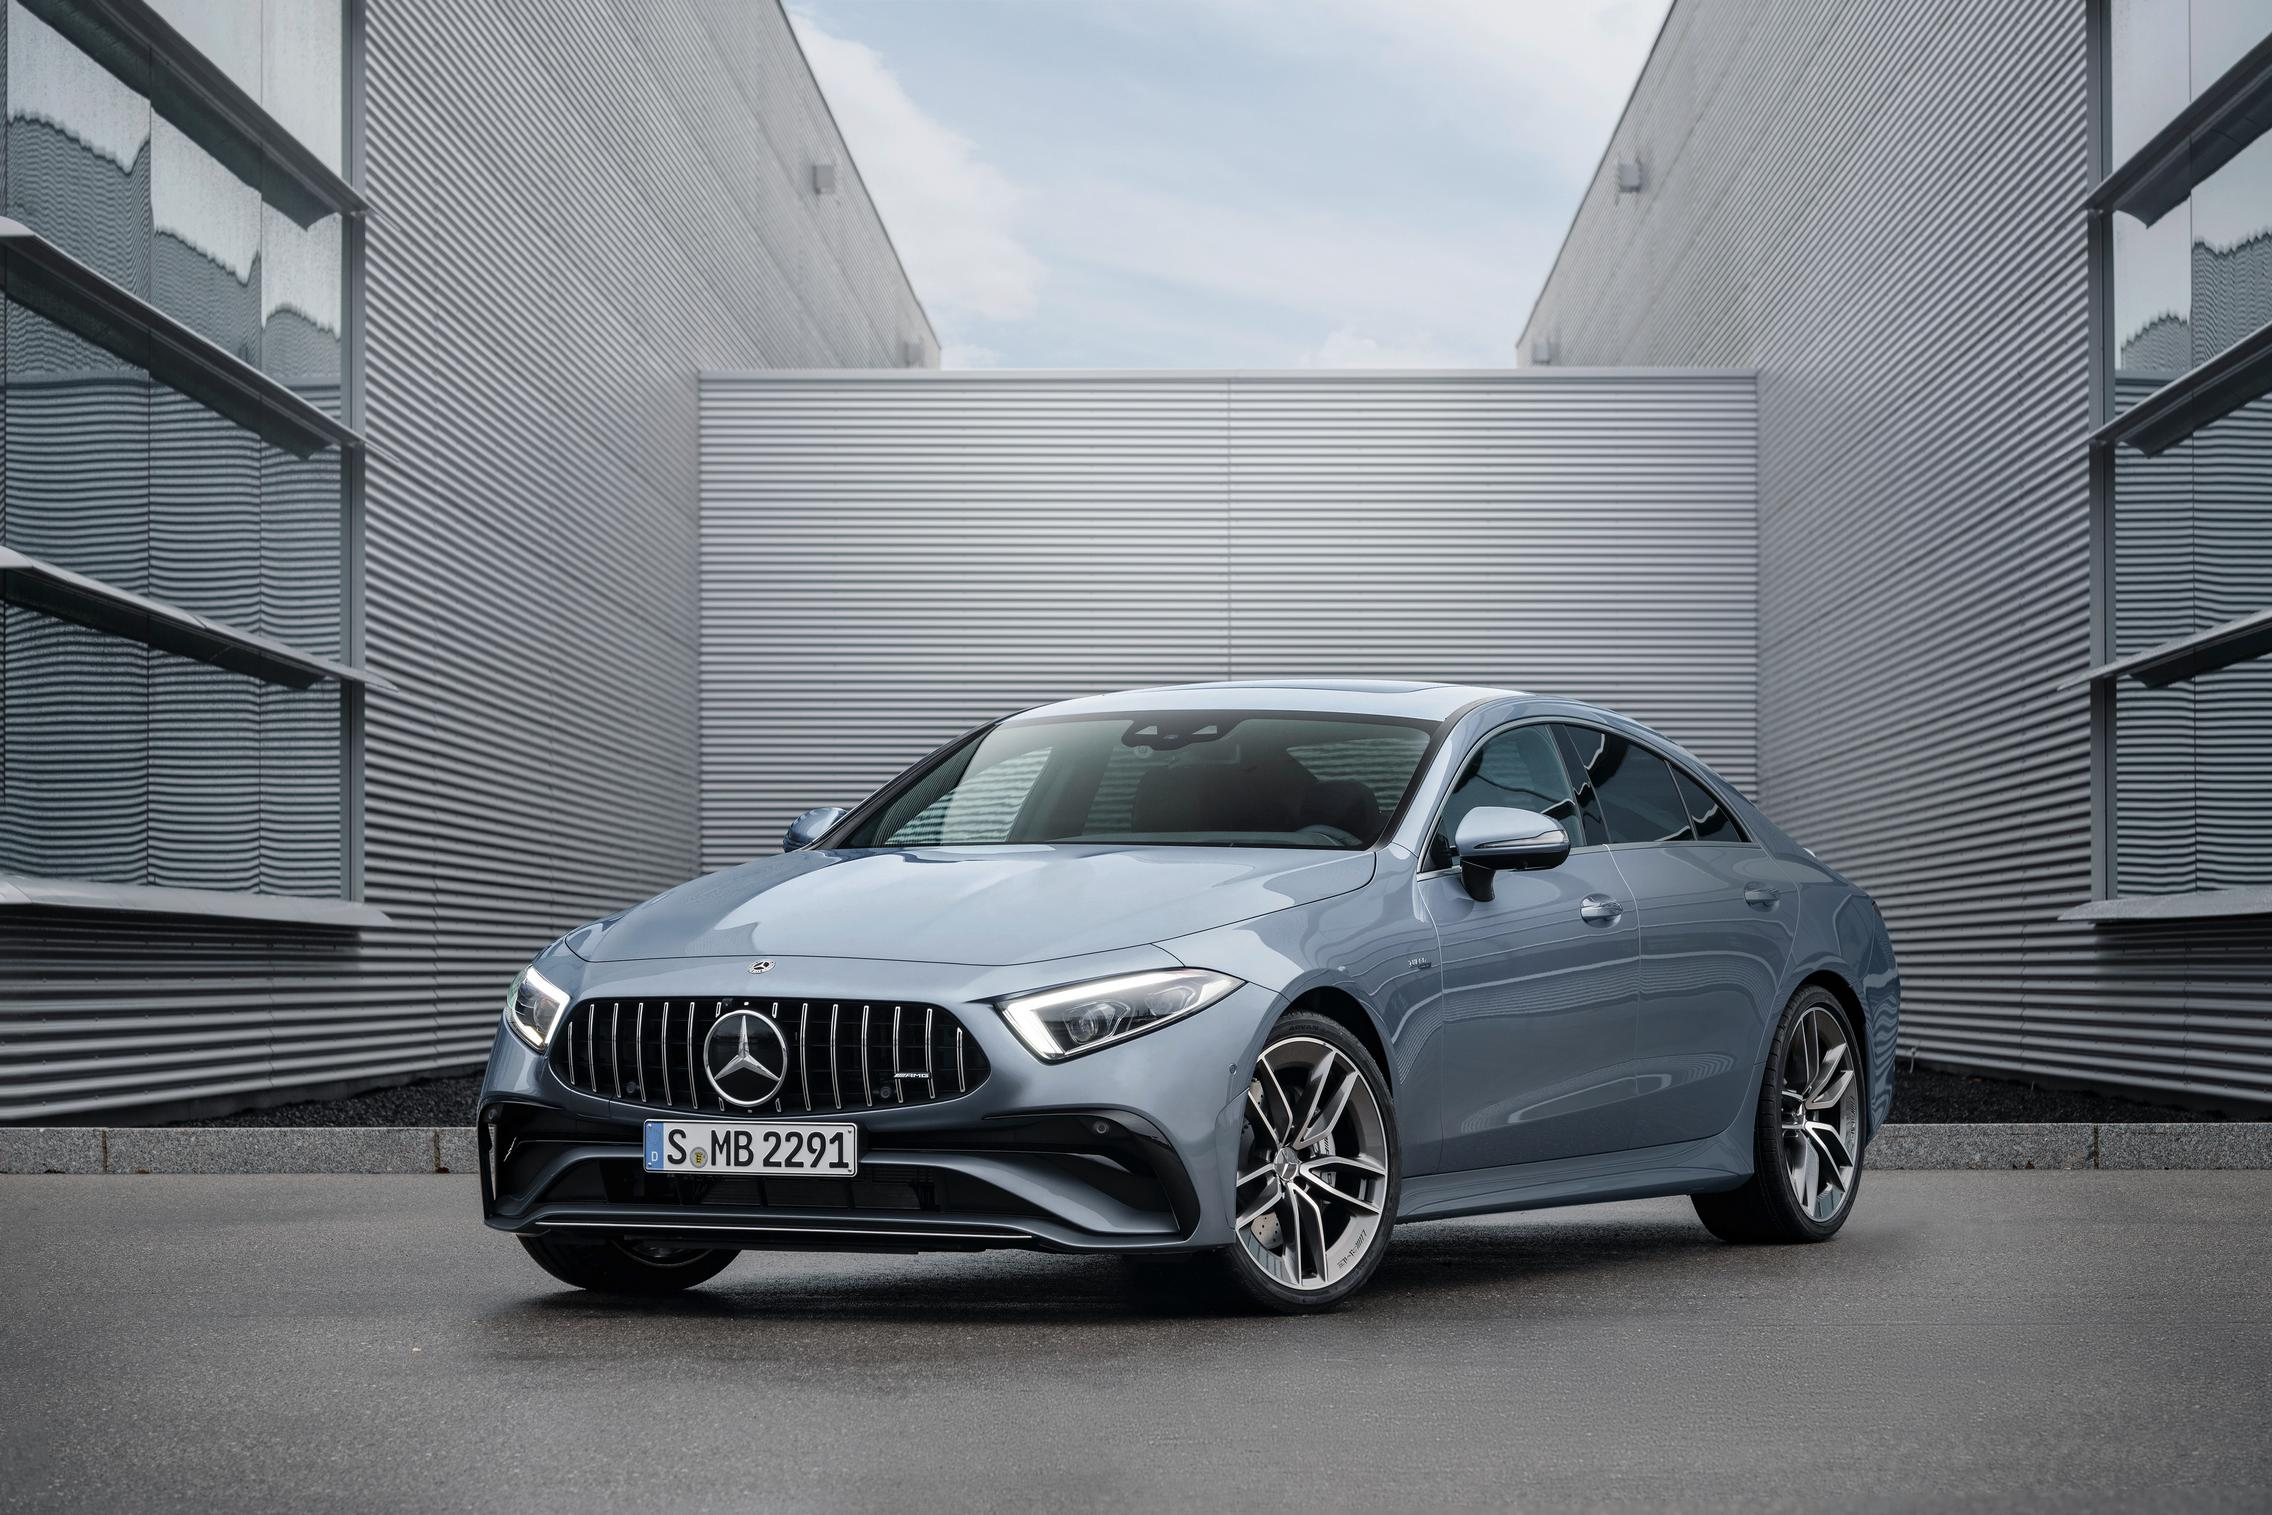 2022 Mercedes-AMG CLS 53 price